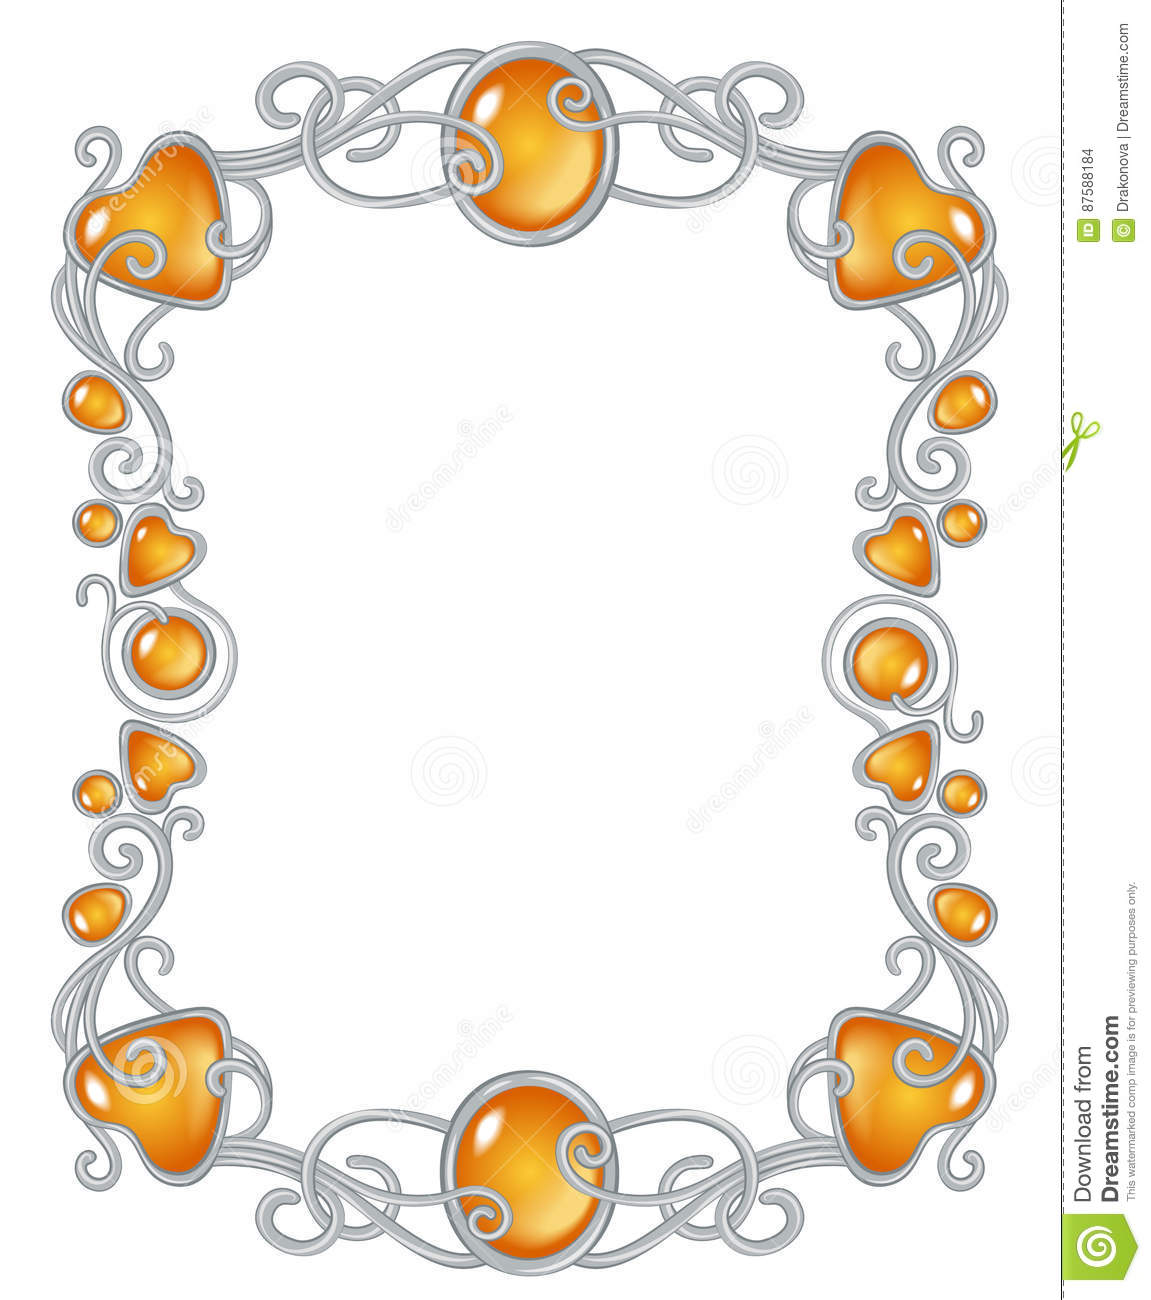 Fantasy Jewel Frame Template Stock Vector - Illustration of jewel ...